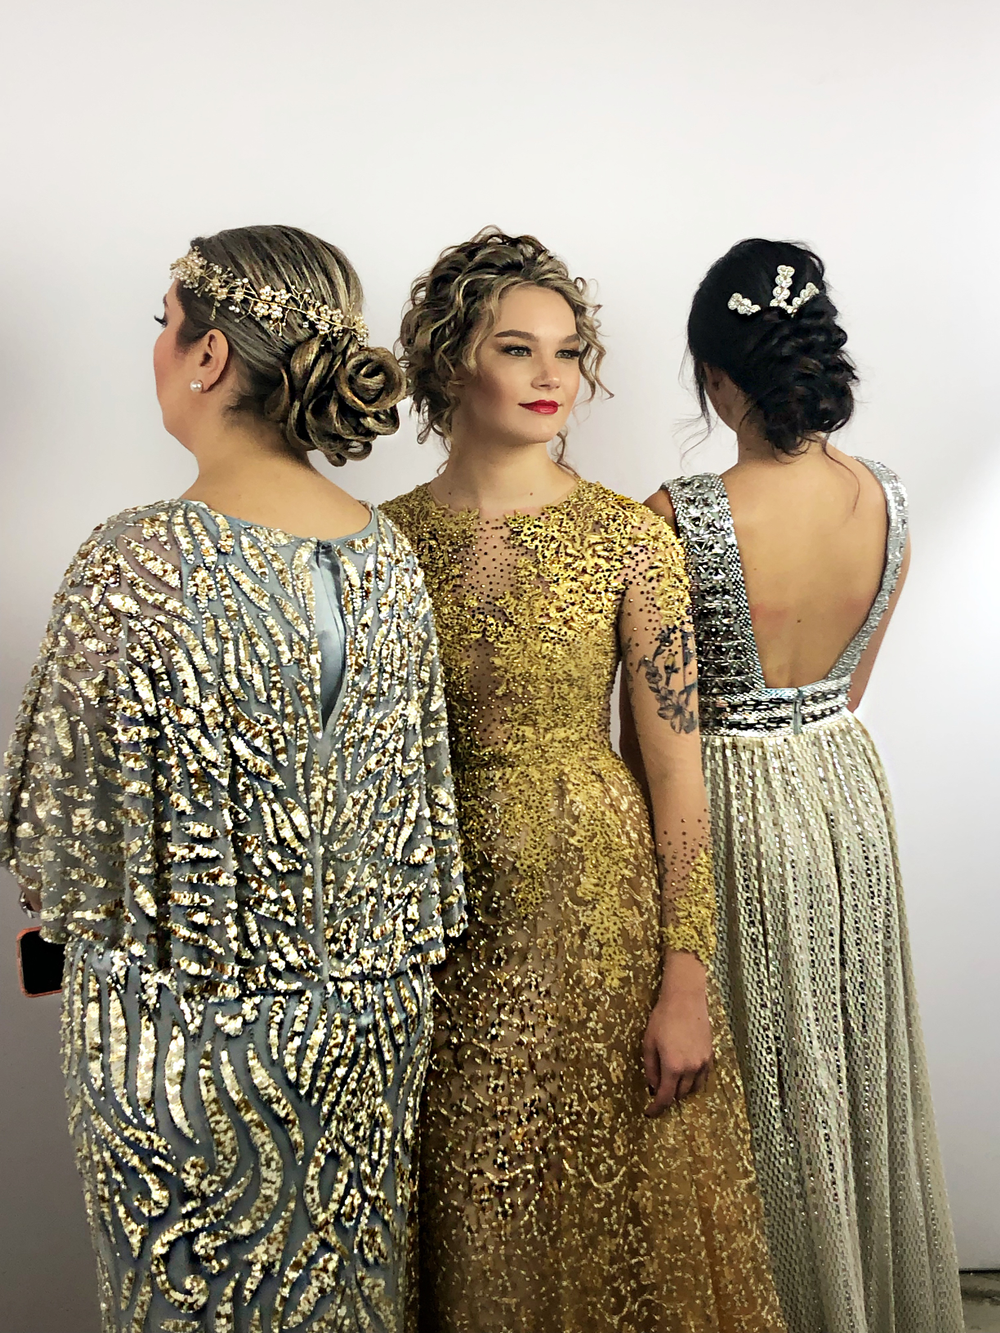 Three of the final looks